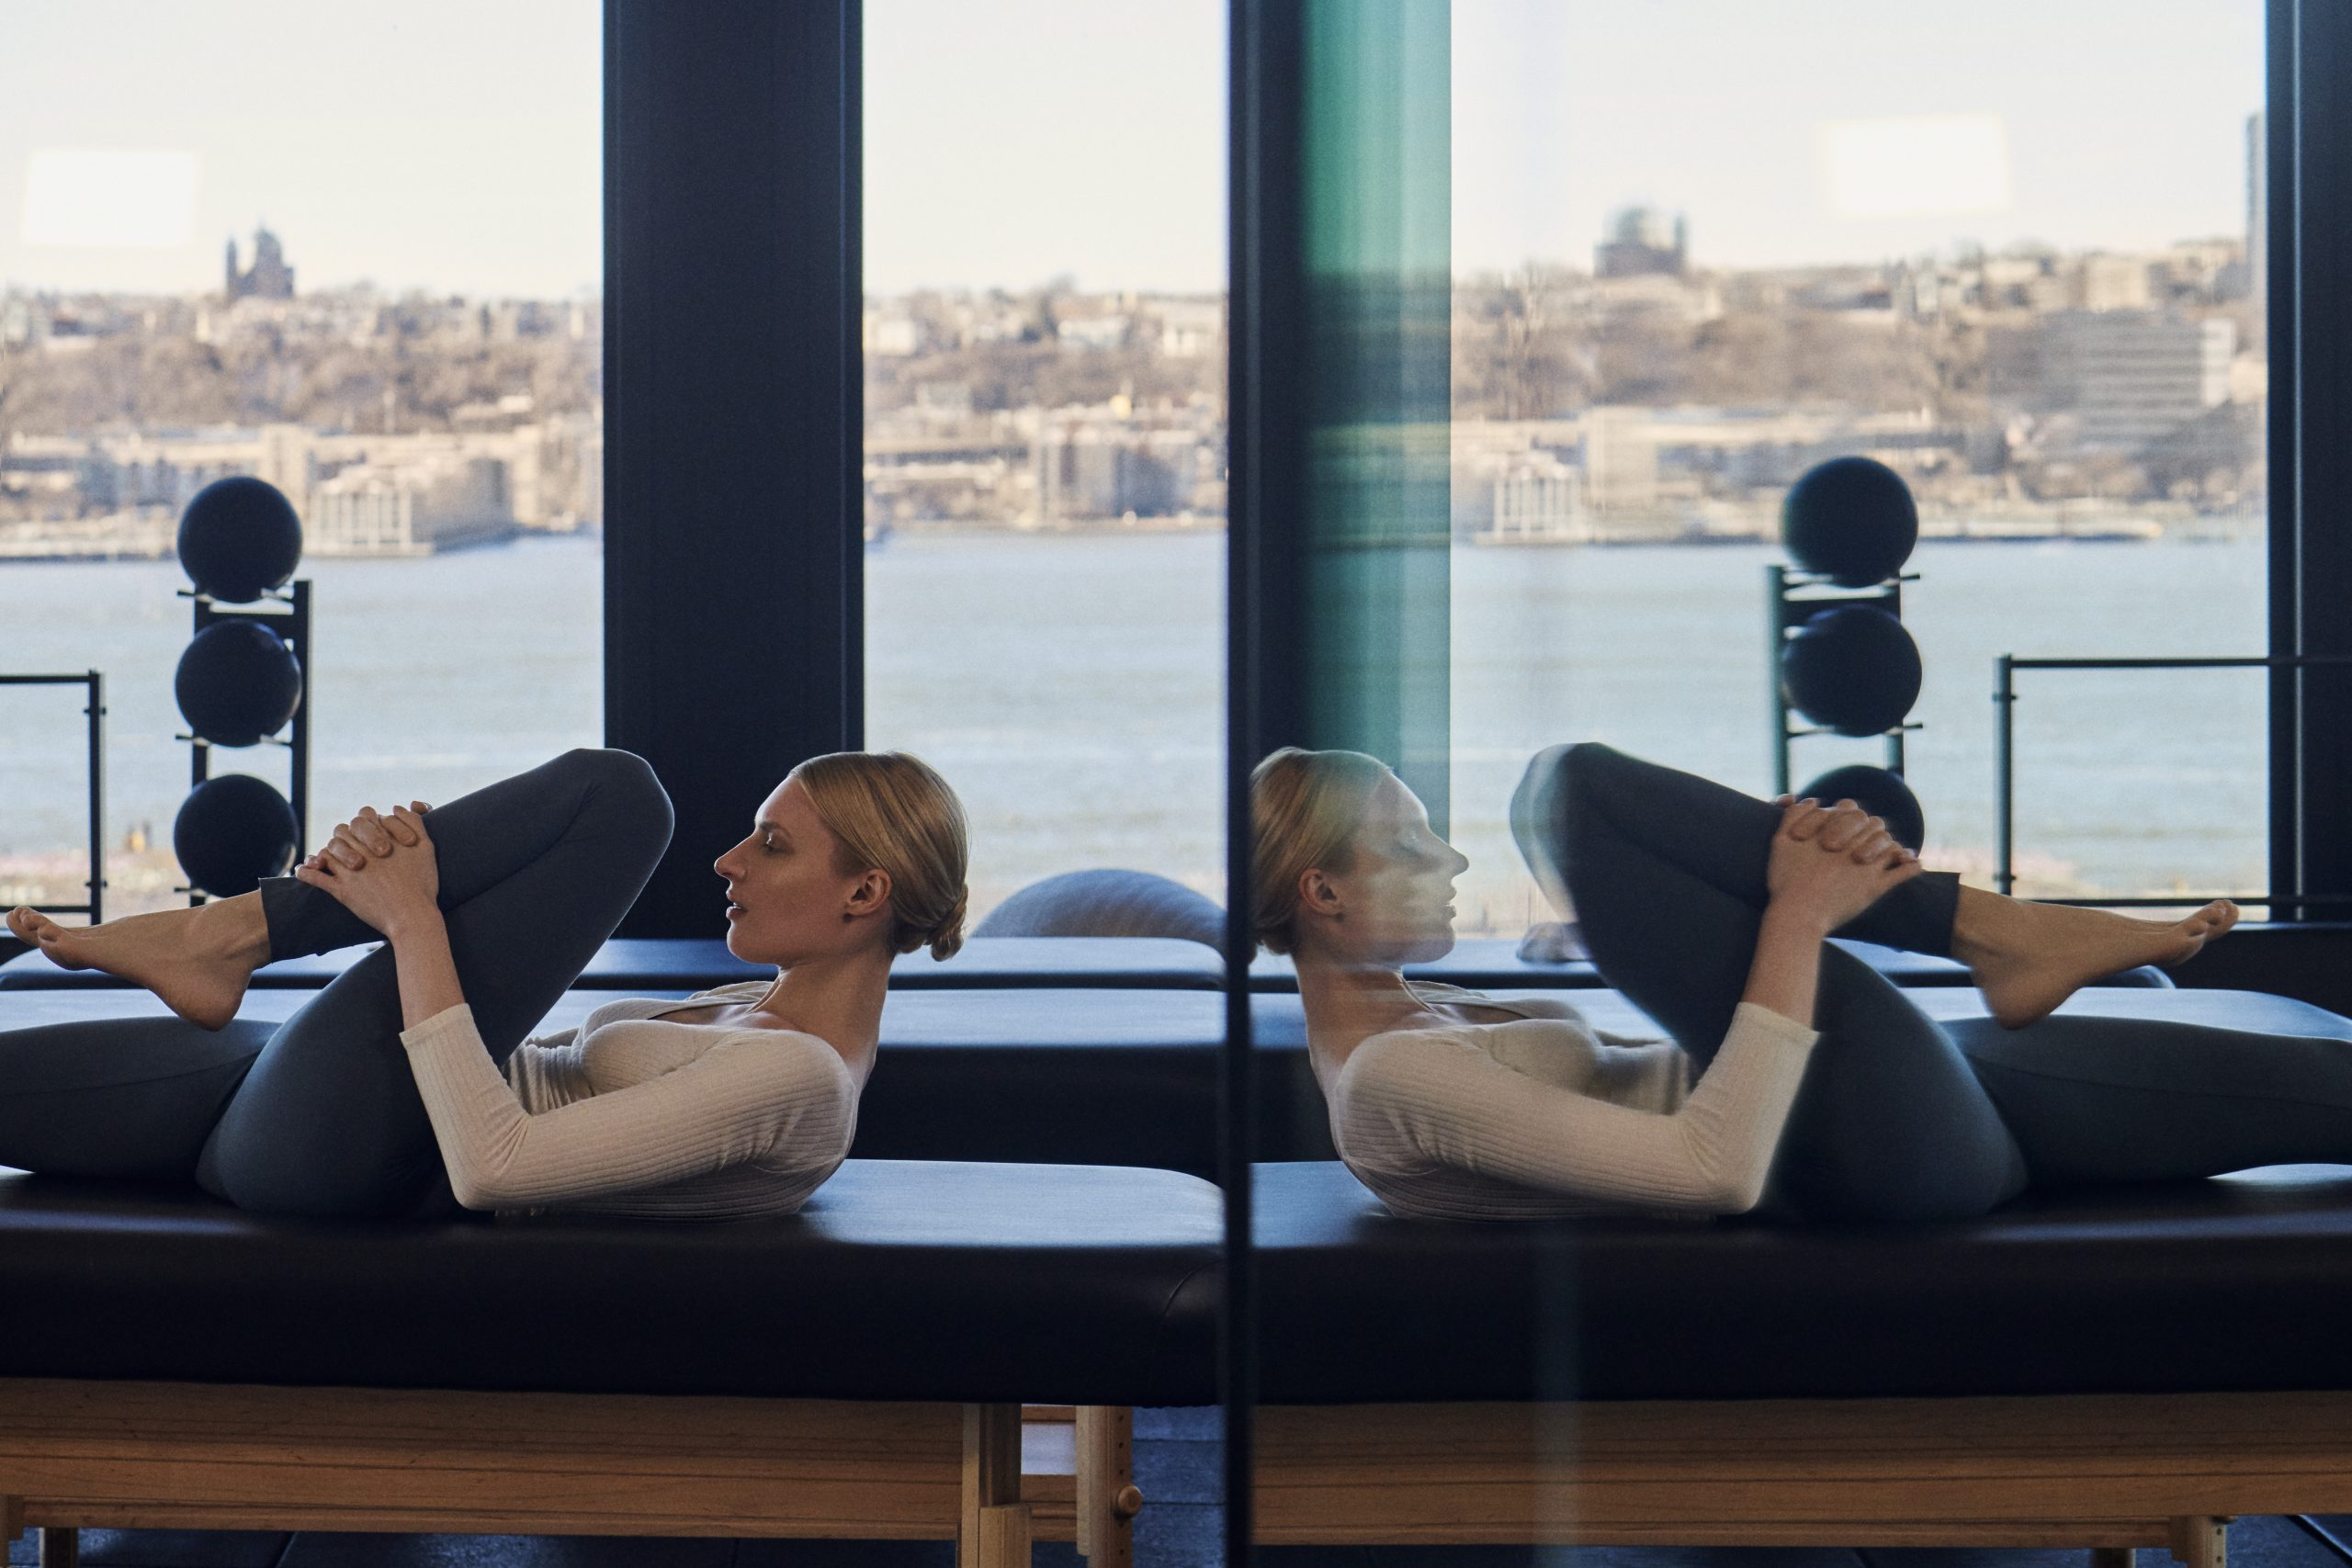 <woman stretching on table in fitness club with hudson river seen through windows in background